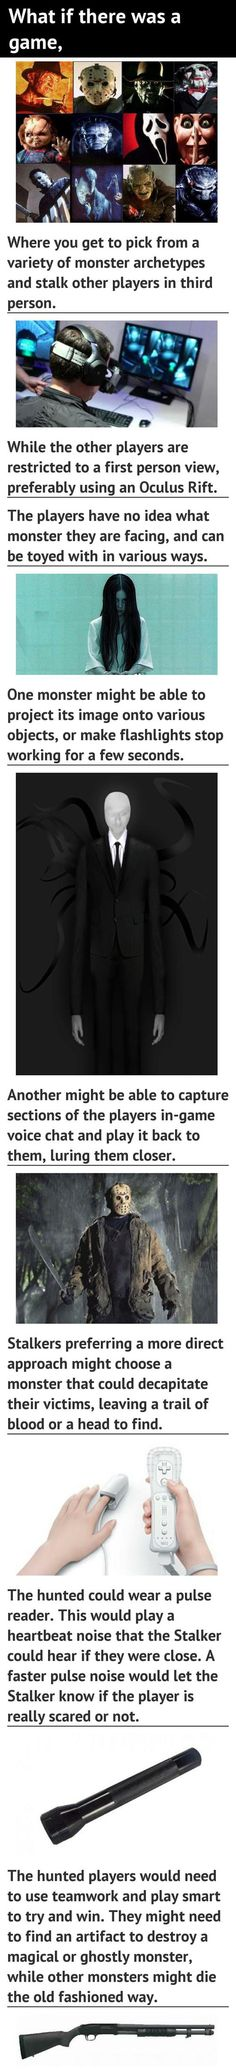 This would be utterly terrifying using the Oculus Rift!